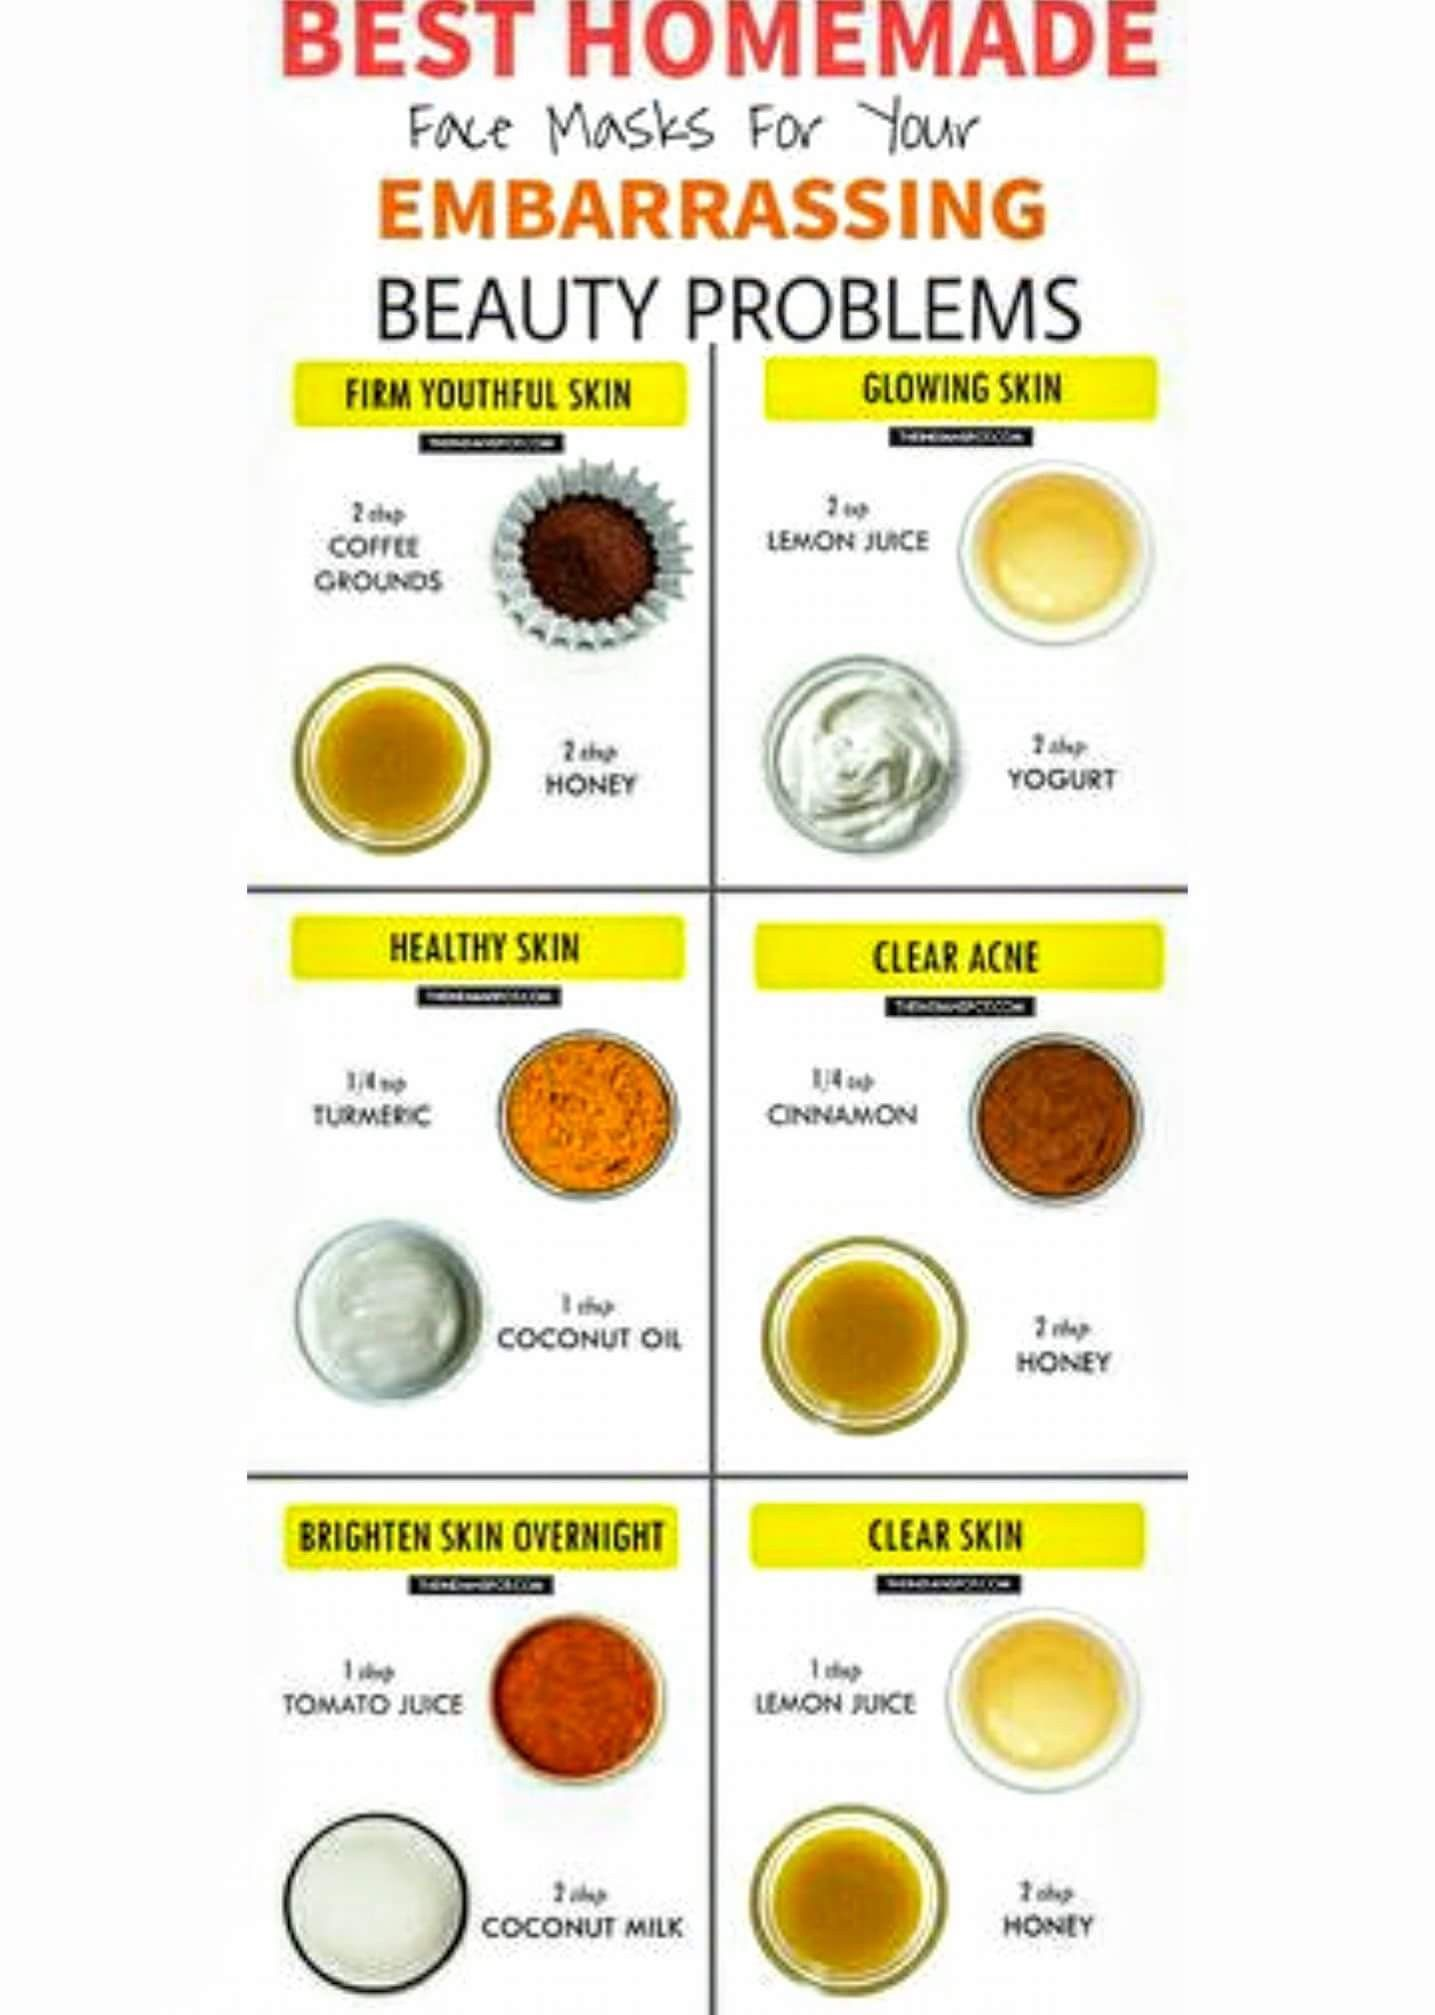 Pin By Gabriela Sonahua On Acne Acne Face Mask Recipe Dry Skin Acne Mask For Dry Skin